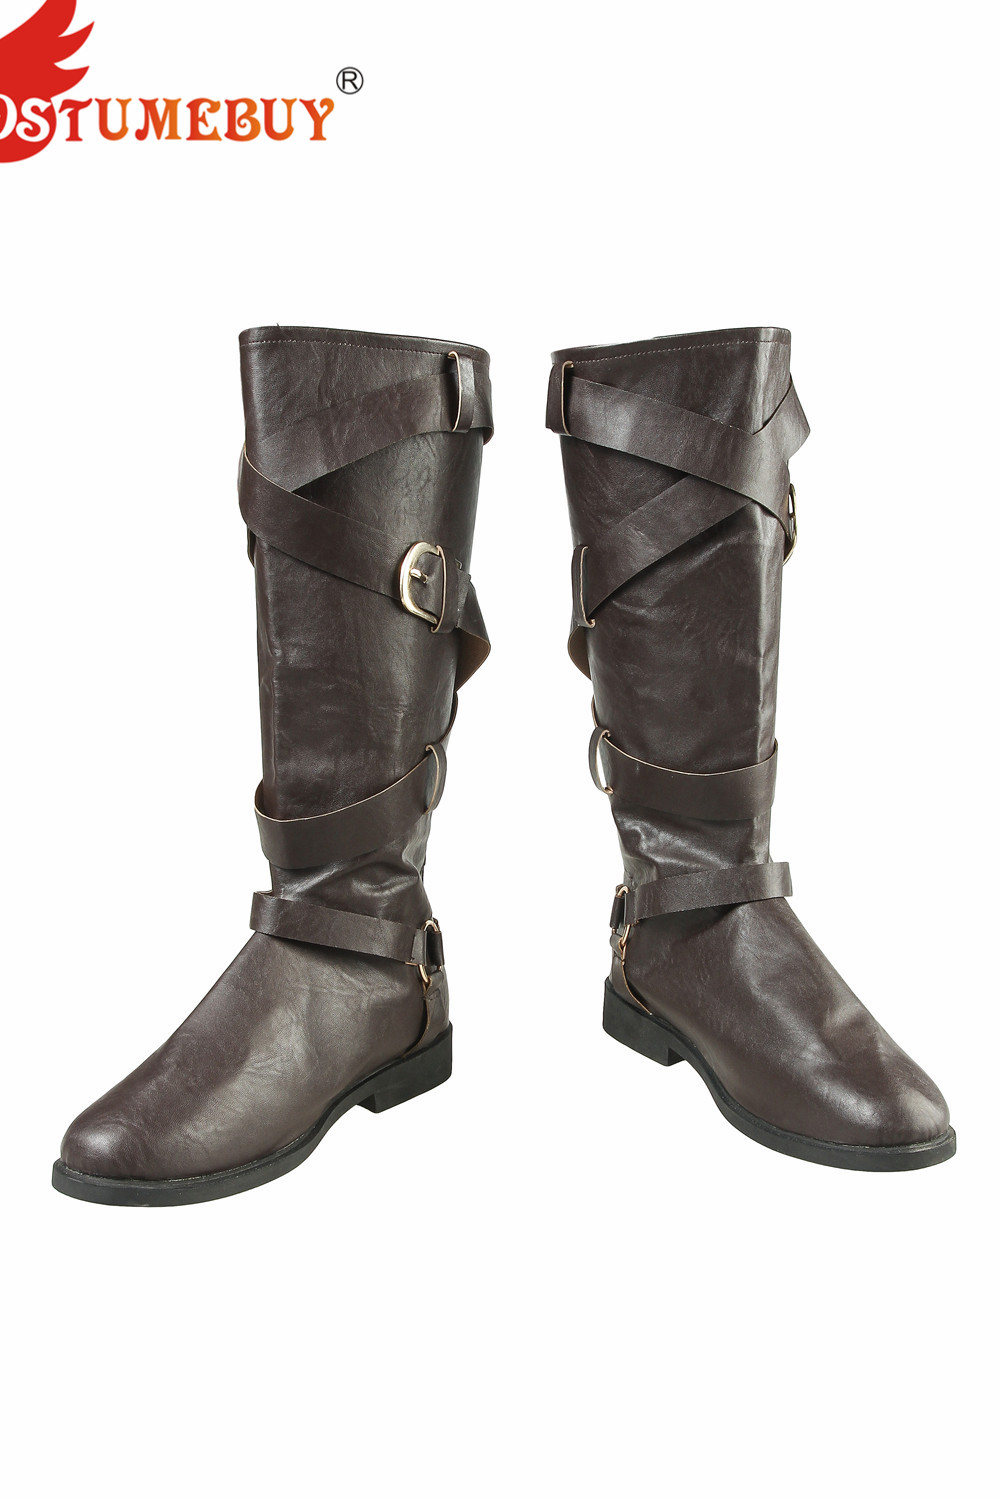 CostumeBuy Game Devil May Cry 5 Cosplay DMC5 Dante Costume PU Leather Boots Mysterious Man Fancy Shoes Halloween Props Outfits